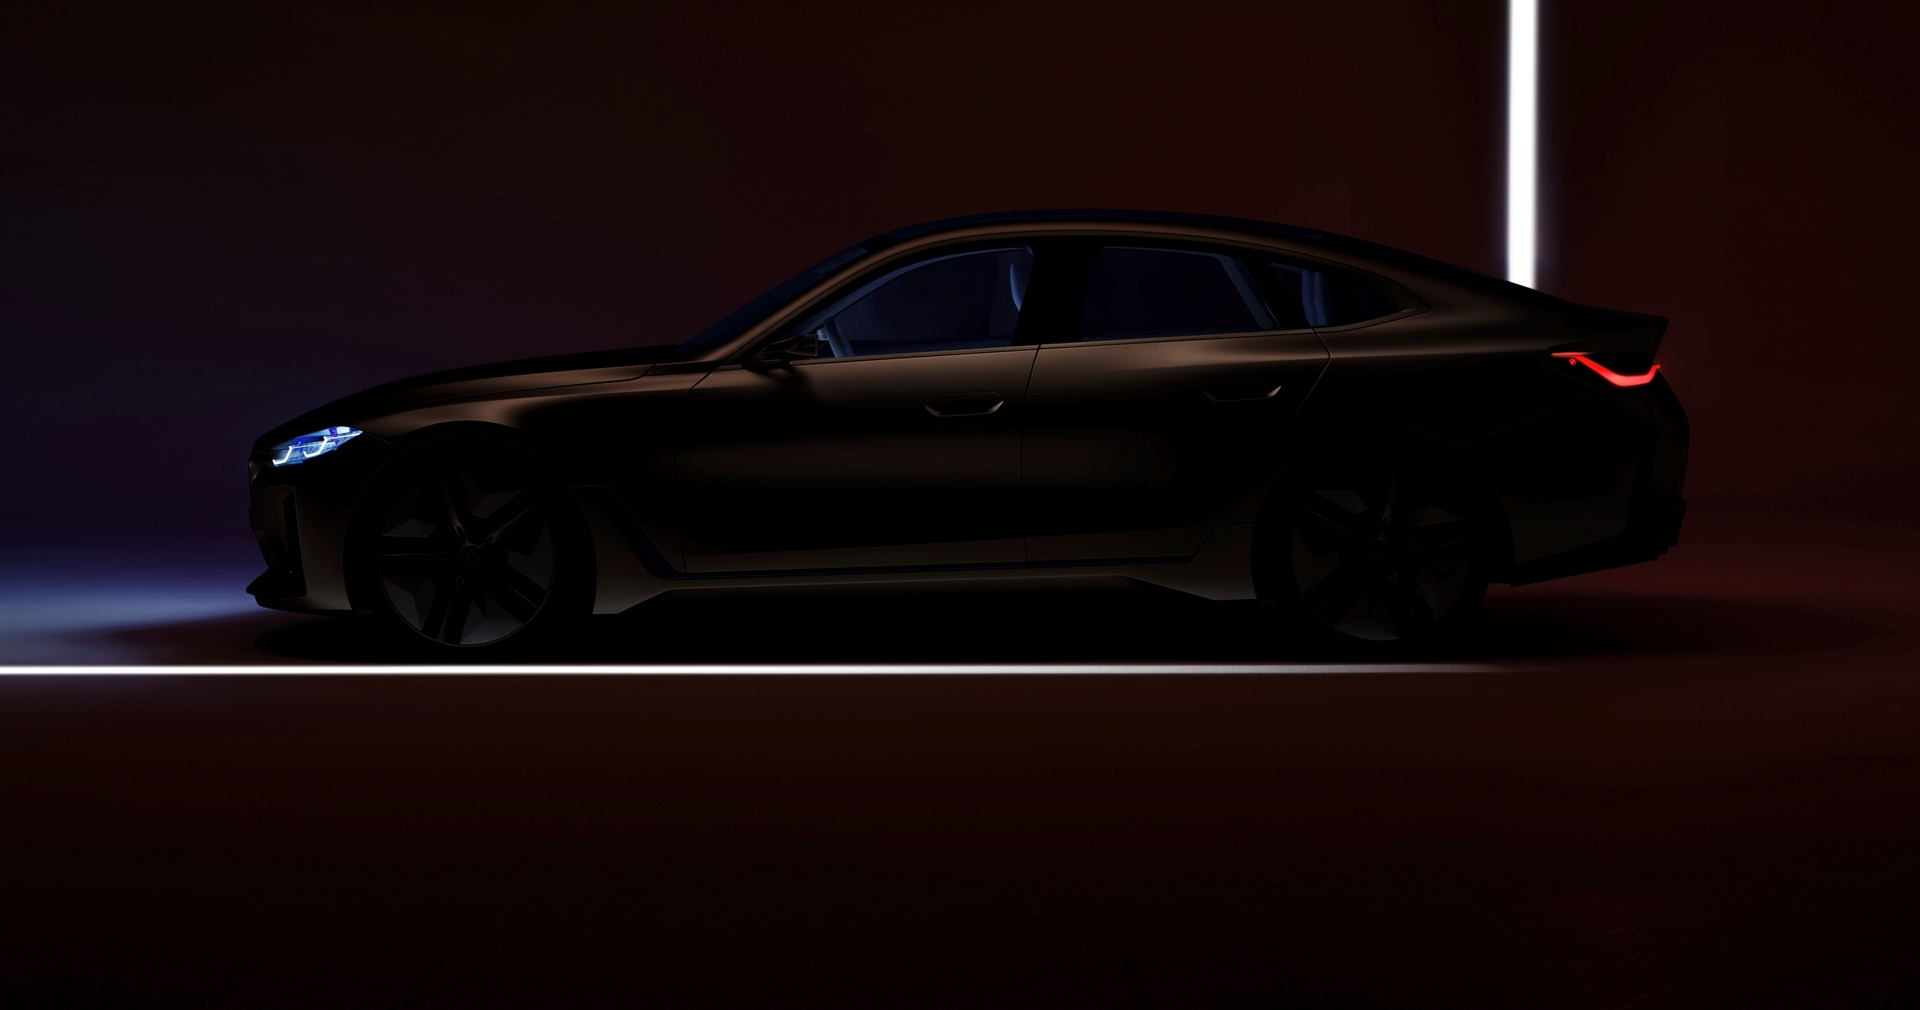 Bmw Concept I4 A New Teaser Before March 3rd Online Reveal